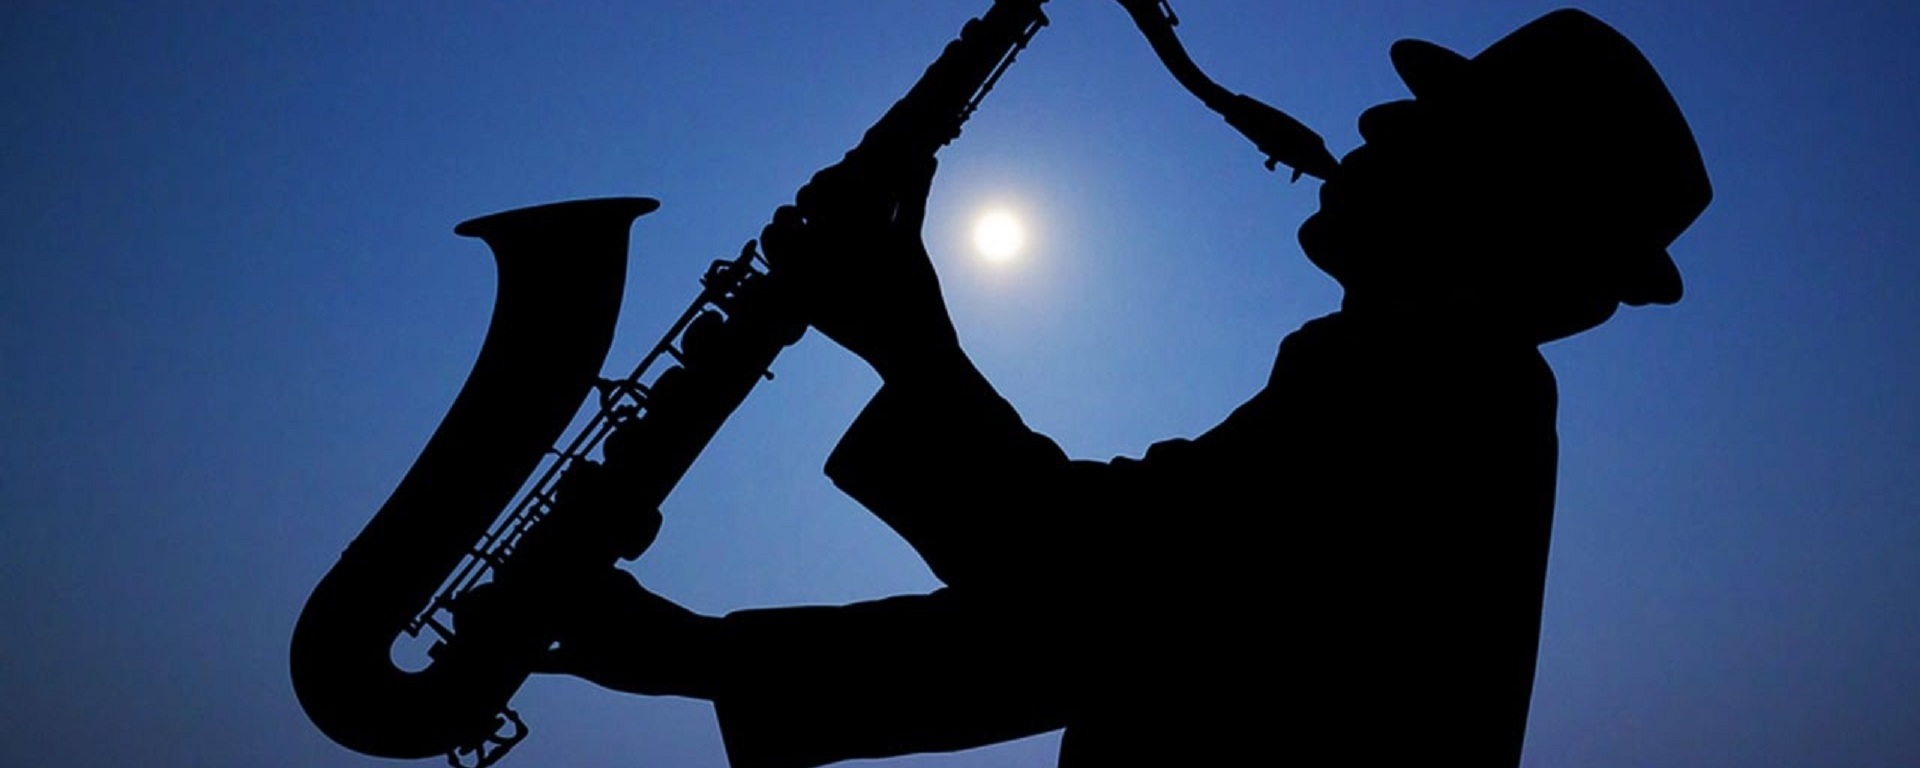 10 Must Have Smooth Jazz Albums For Your Collection The